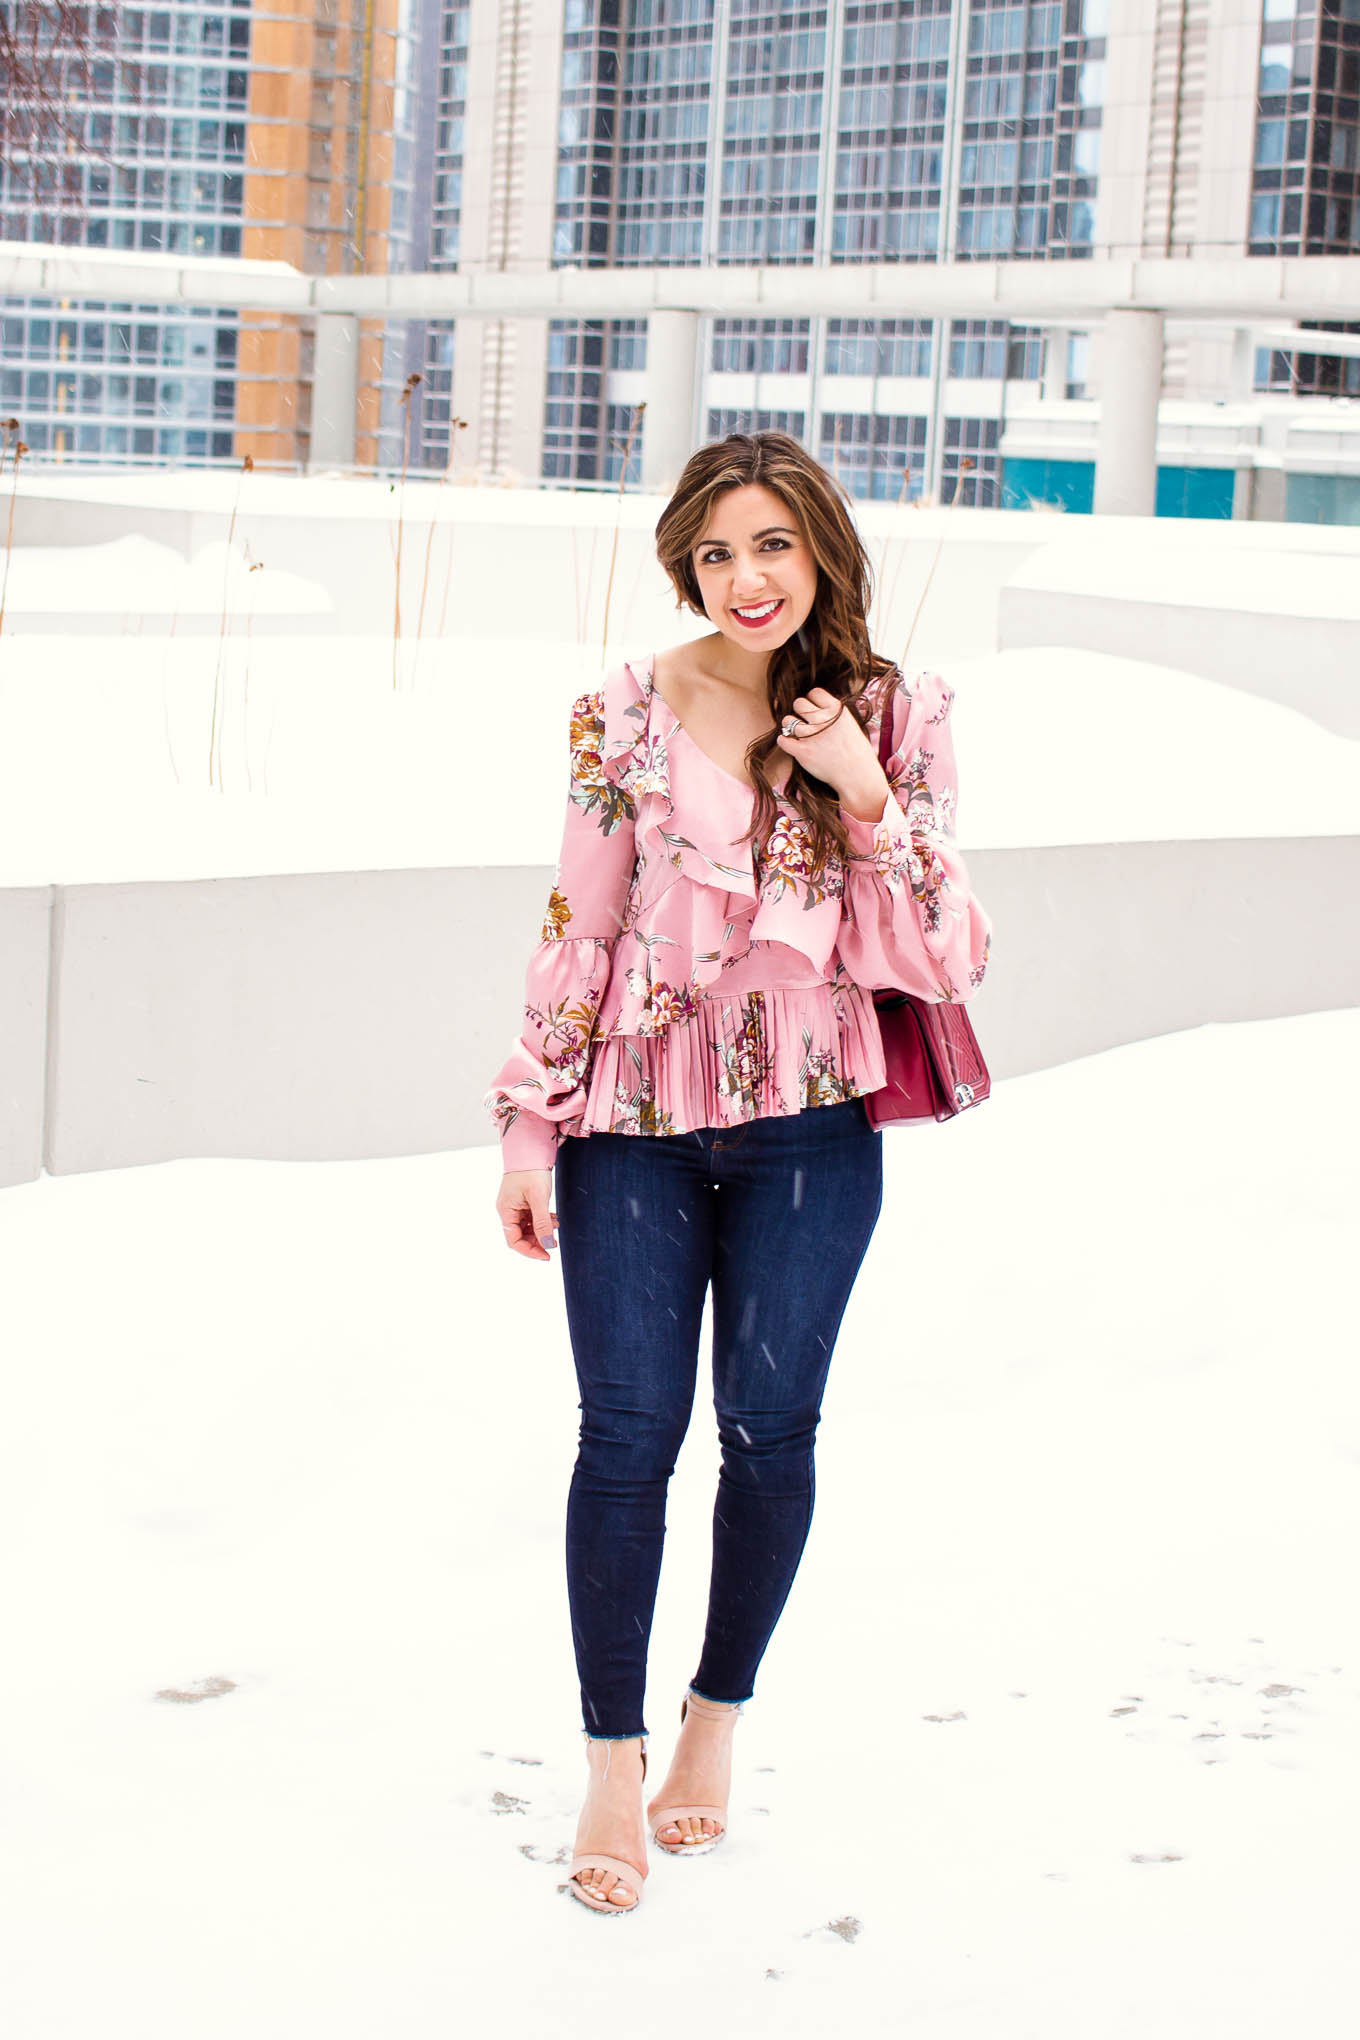 Lifestyle blogger Roxanne of Glass of Glam wearing a Valentine's Day outfit: a Leith pink asymmetrical top, Mott and Bow denim, Justfab heels, and a Rebecca Minkoff bag - Valentines Day Outfit by popular Washington DC fashion blogger Glass of Glam